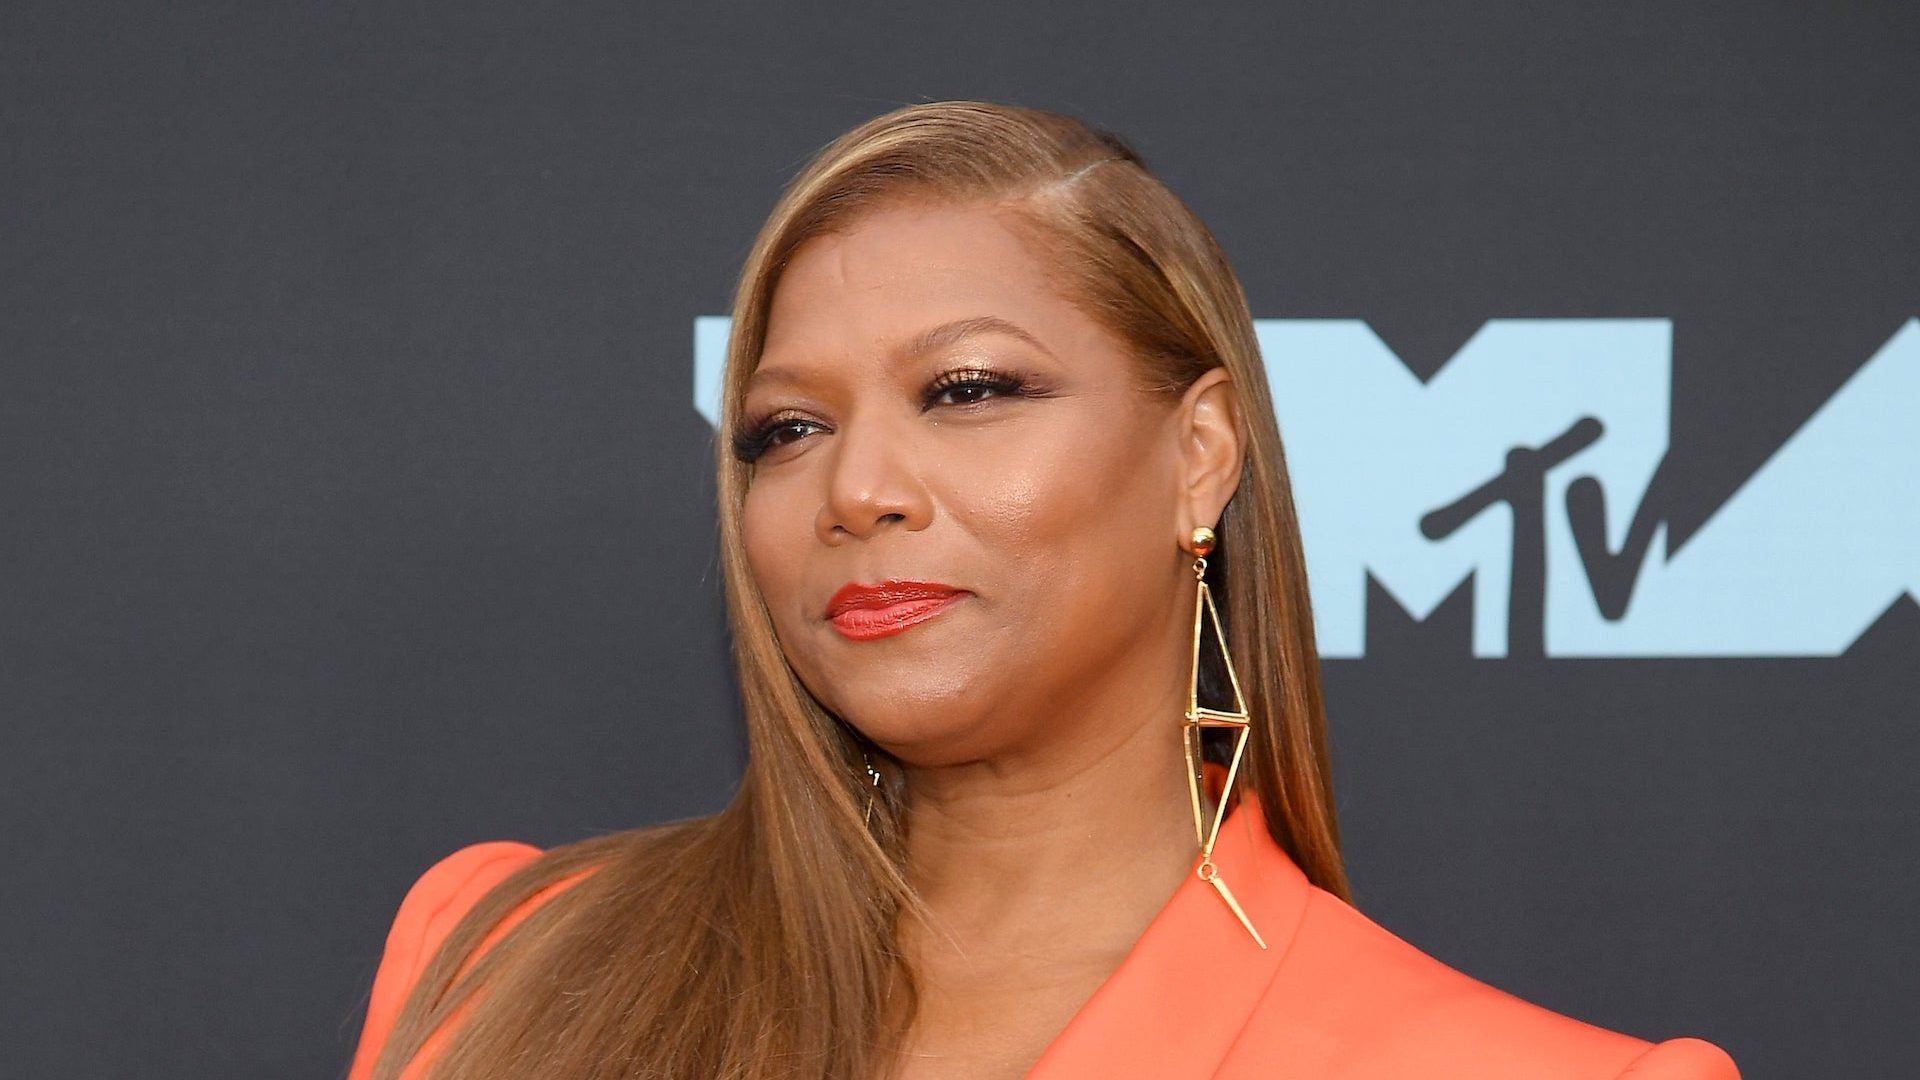 Queen Latifah Said Bullets Were Must-Have Item During Self-Isolation